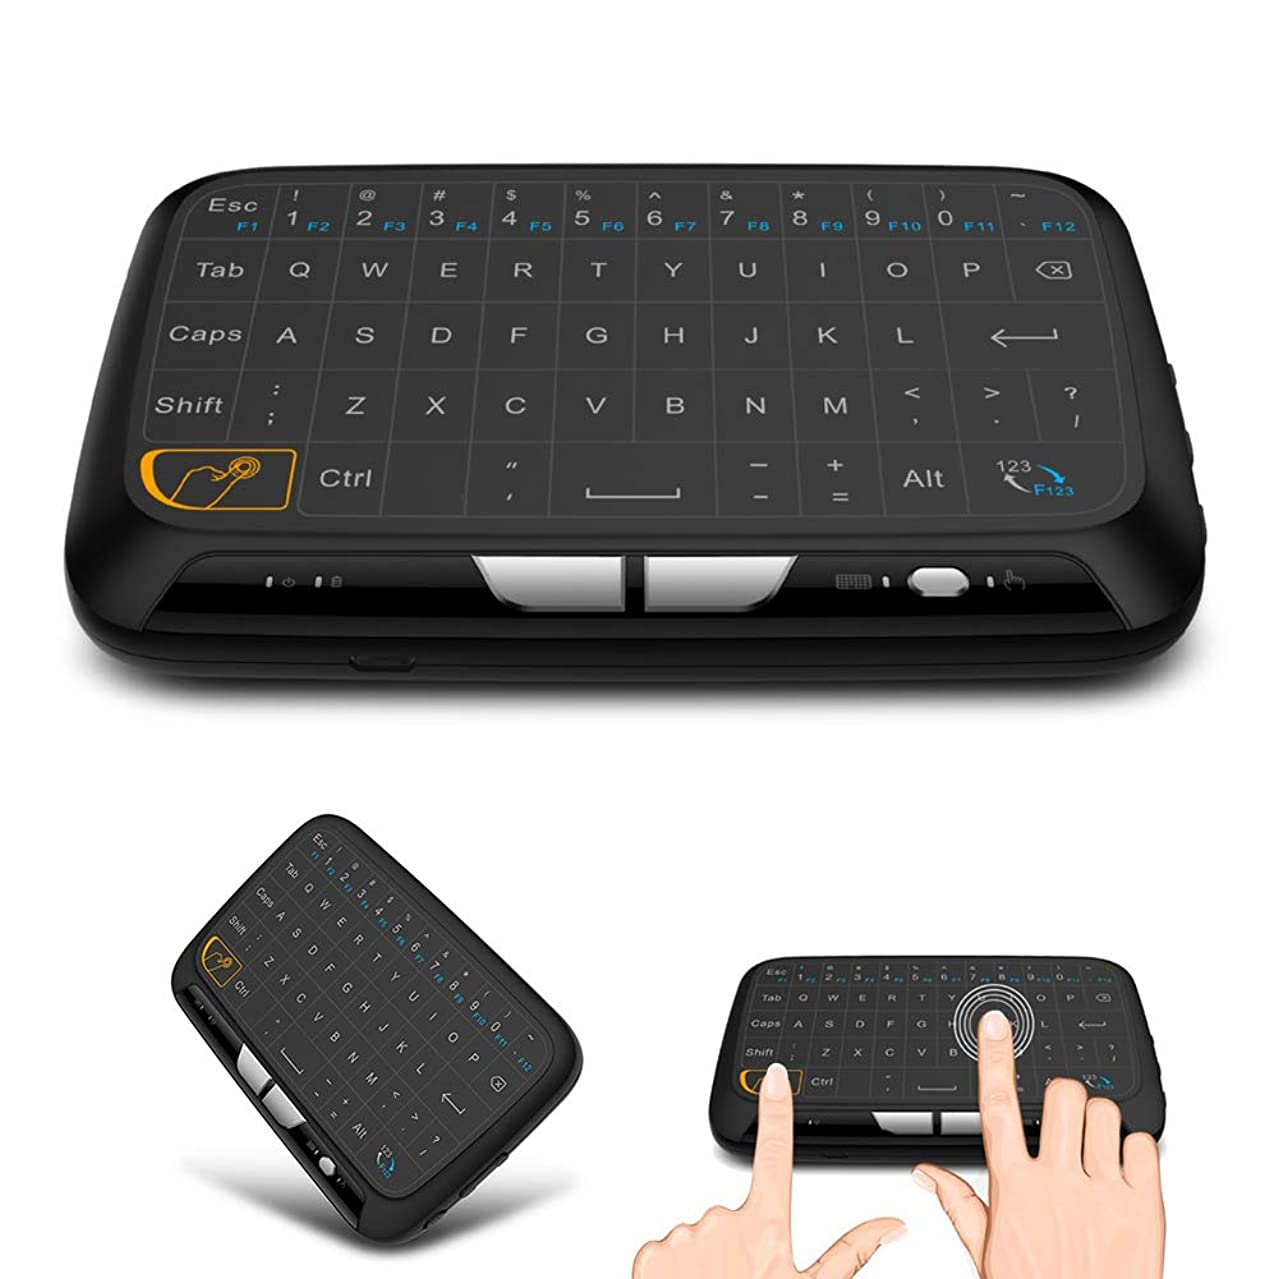 yanbirdfx H18 2.4GHz Mini Wireless Touch Keyboard Air Mouse for PC Laptop Smart Android TV - Black